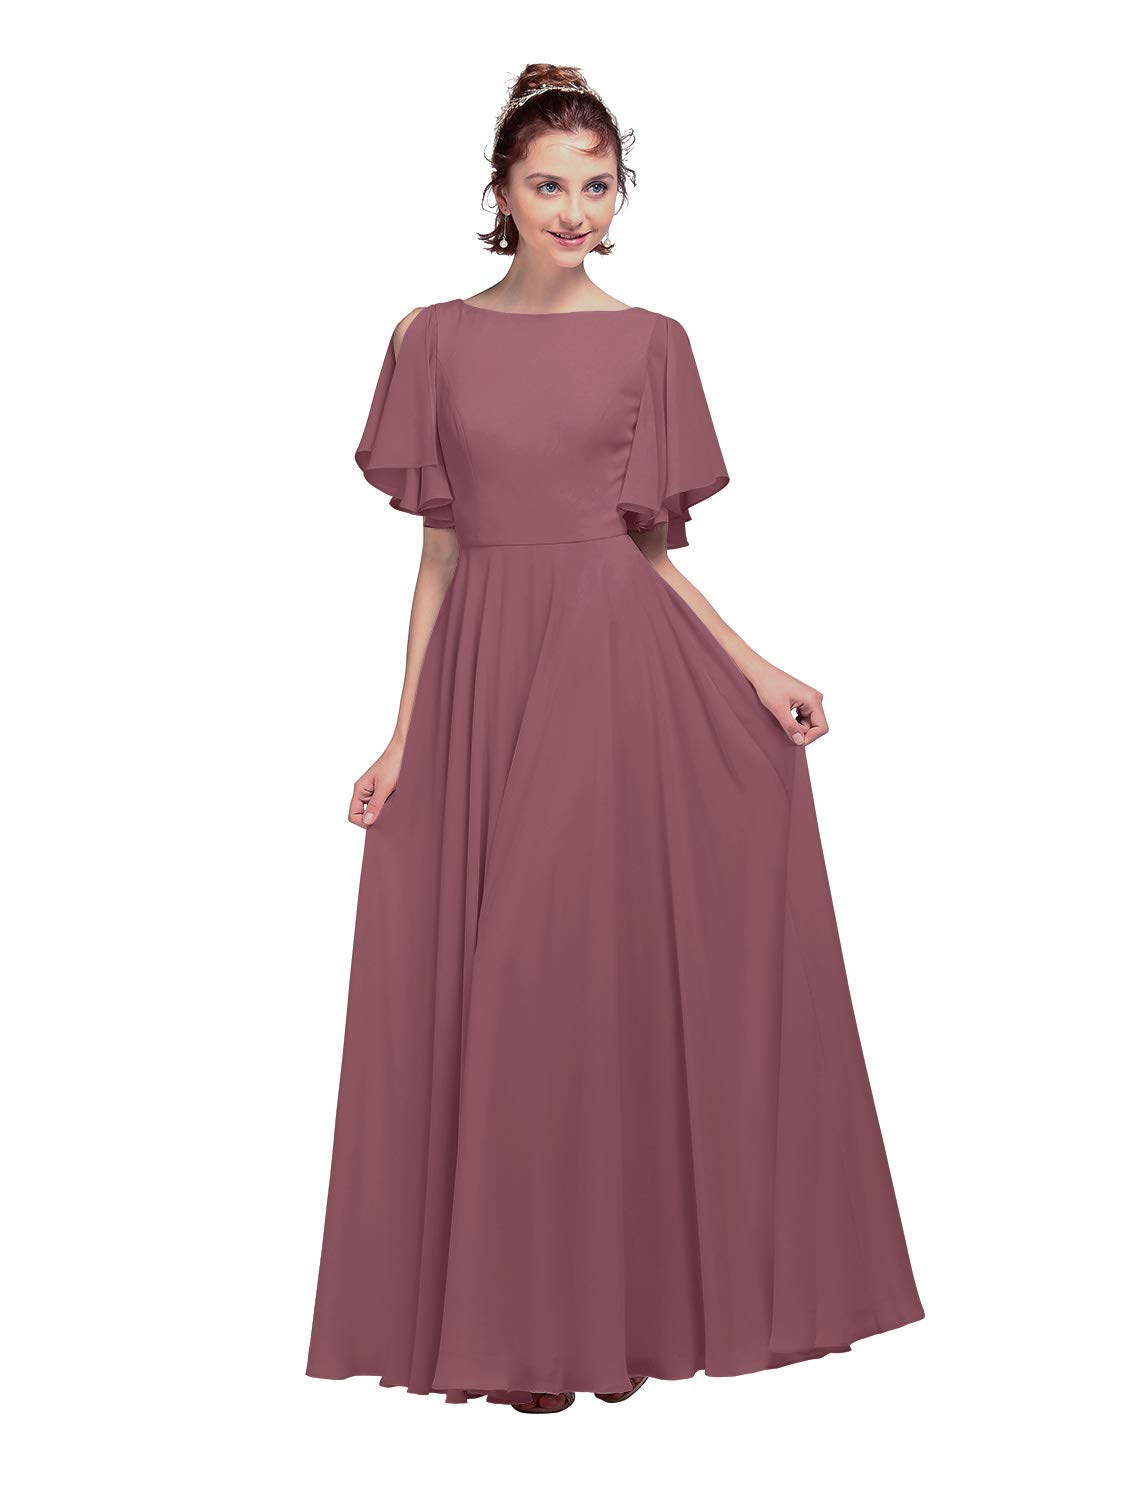 AW BRIDAL V Back Chiffon Bridesmaid Dresses with Sleeves Long Plus Size Wedding Formal Evening Party Dress